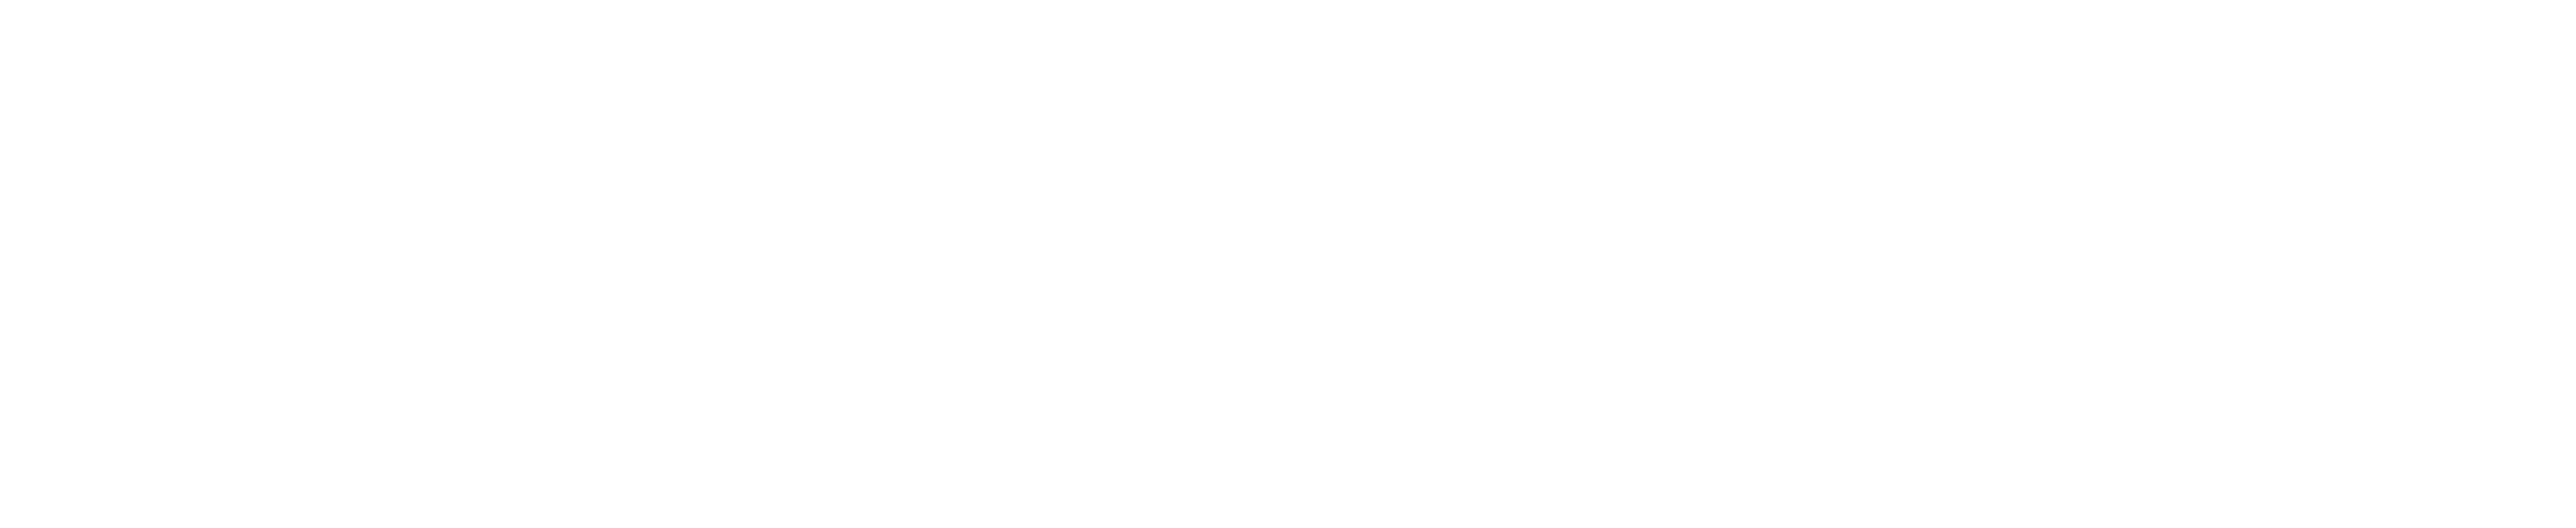 Goodwill of South Central Ohio